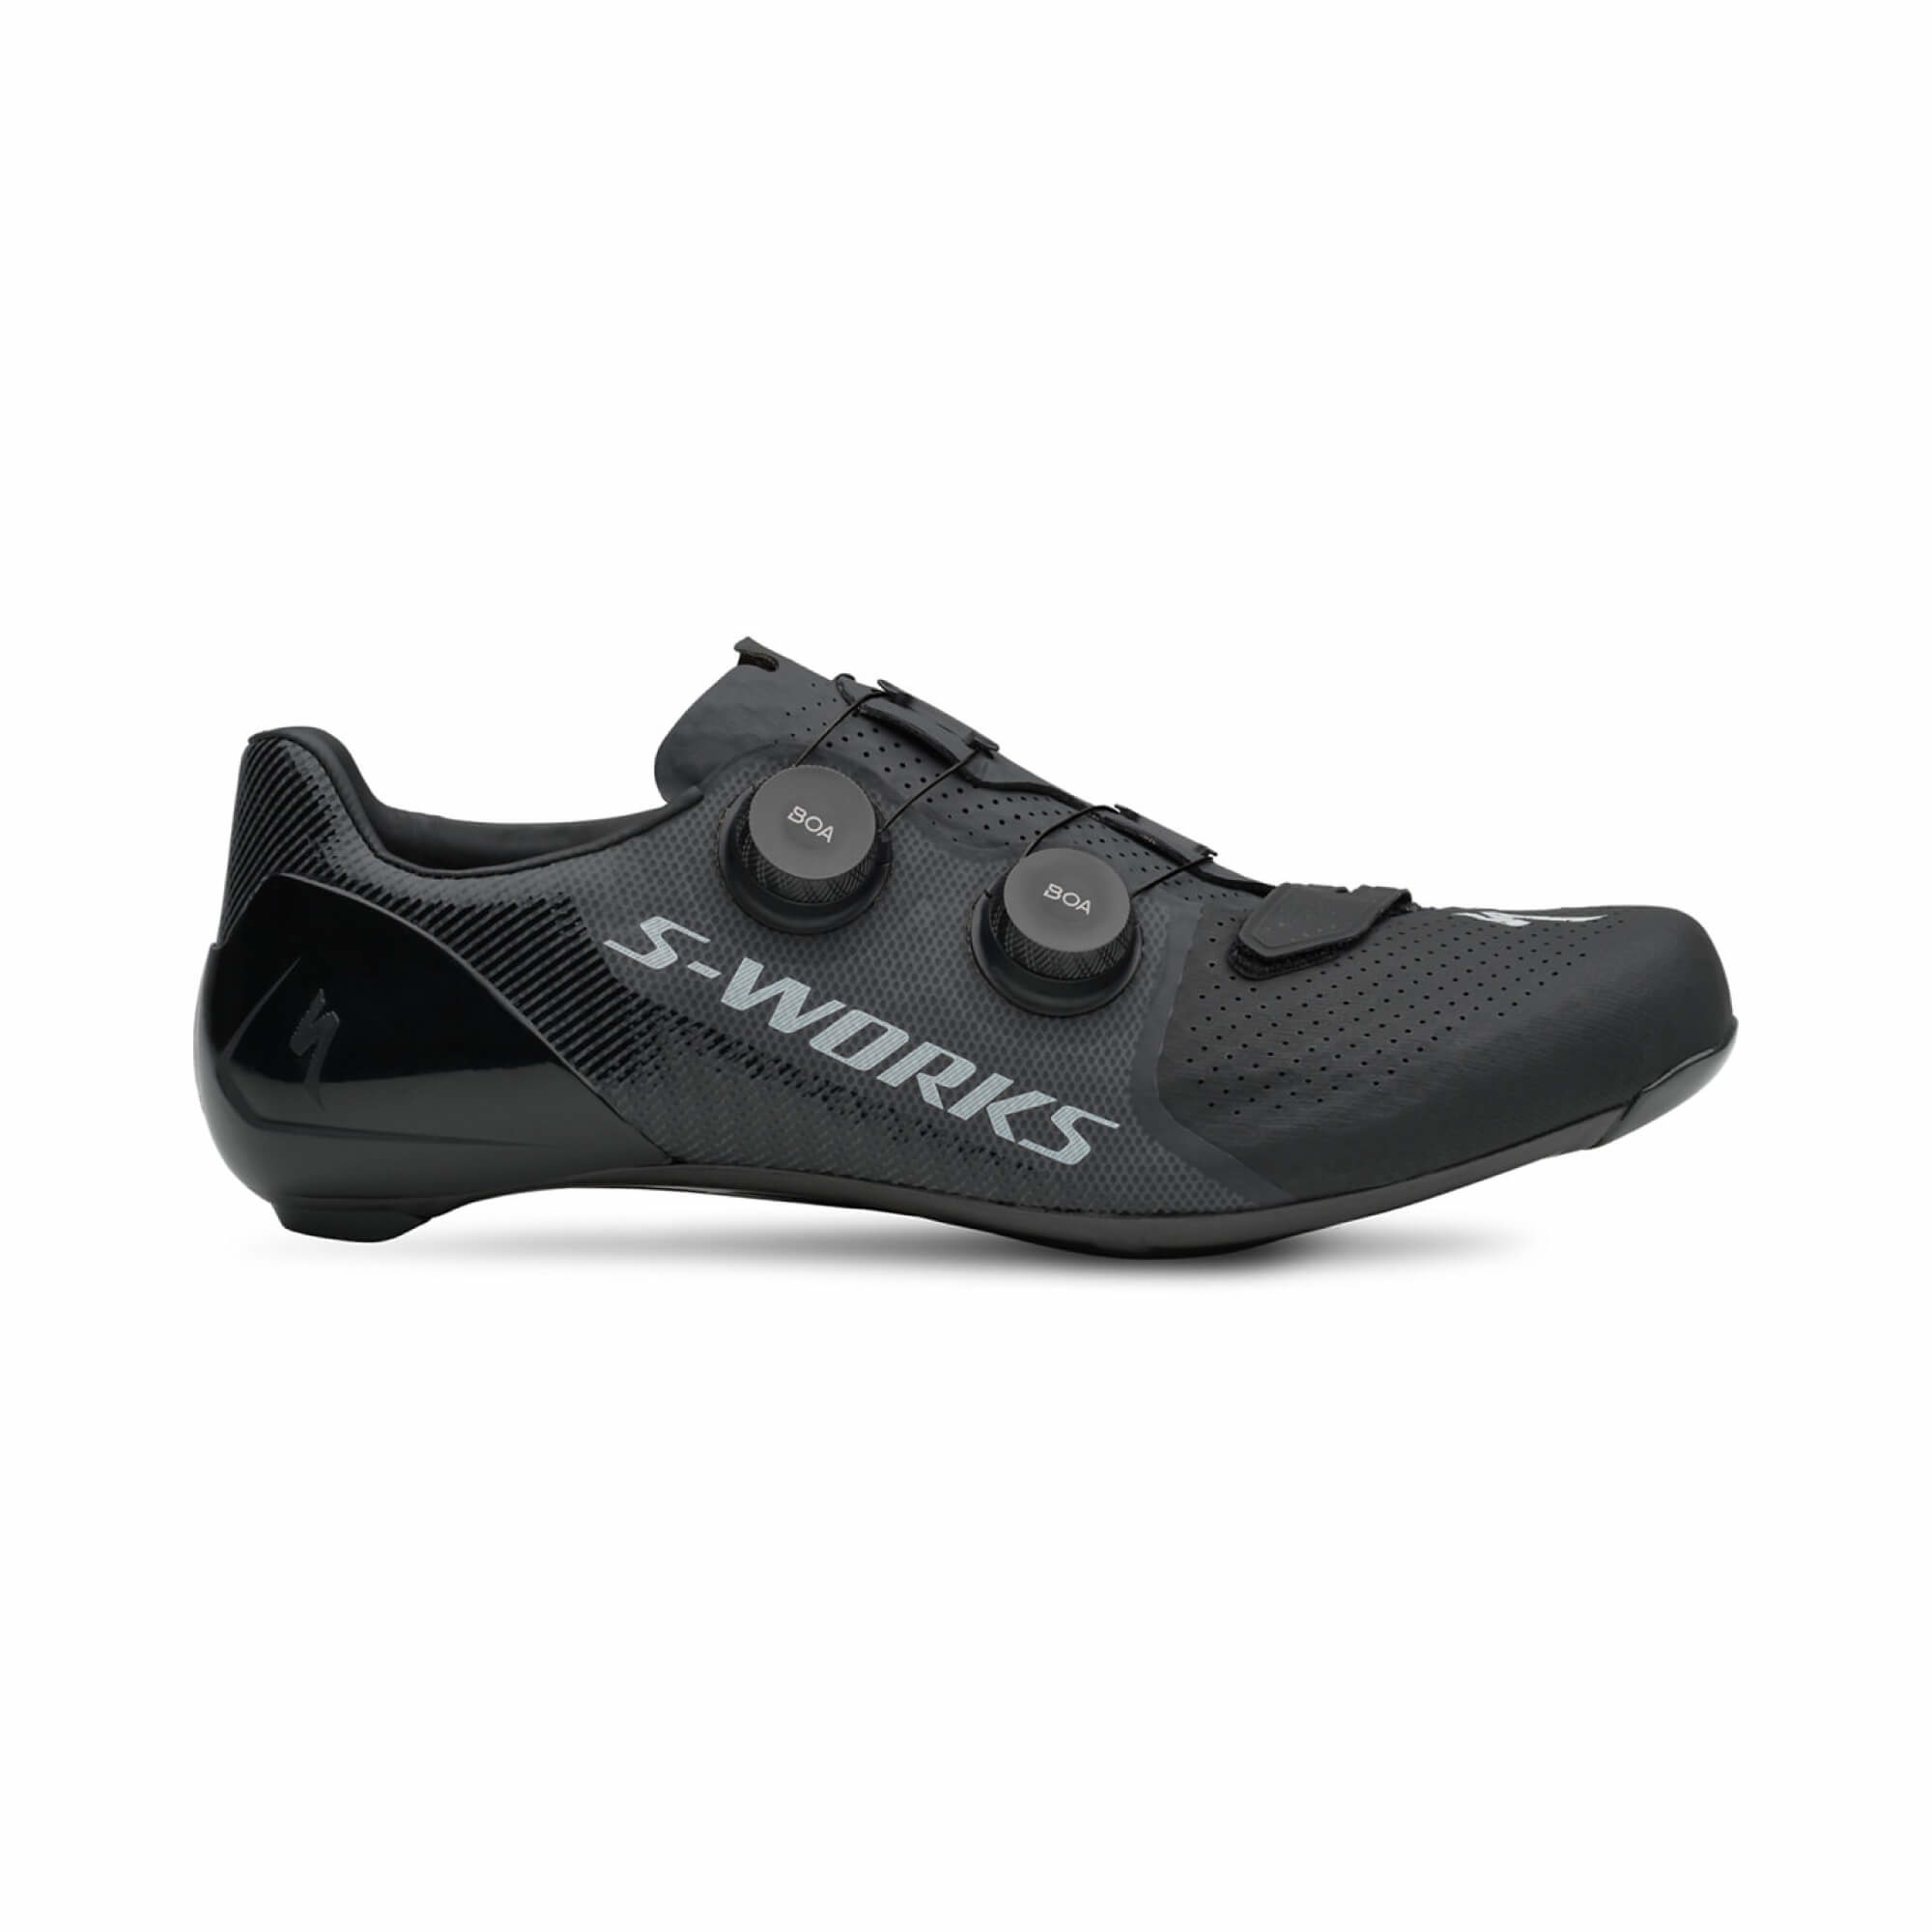 S-Works 7 Road Shoe-1